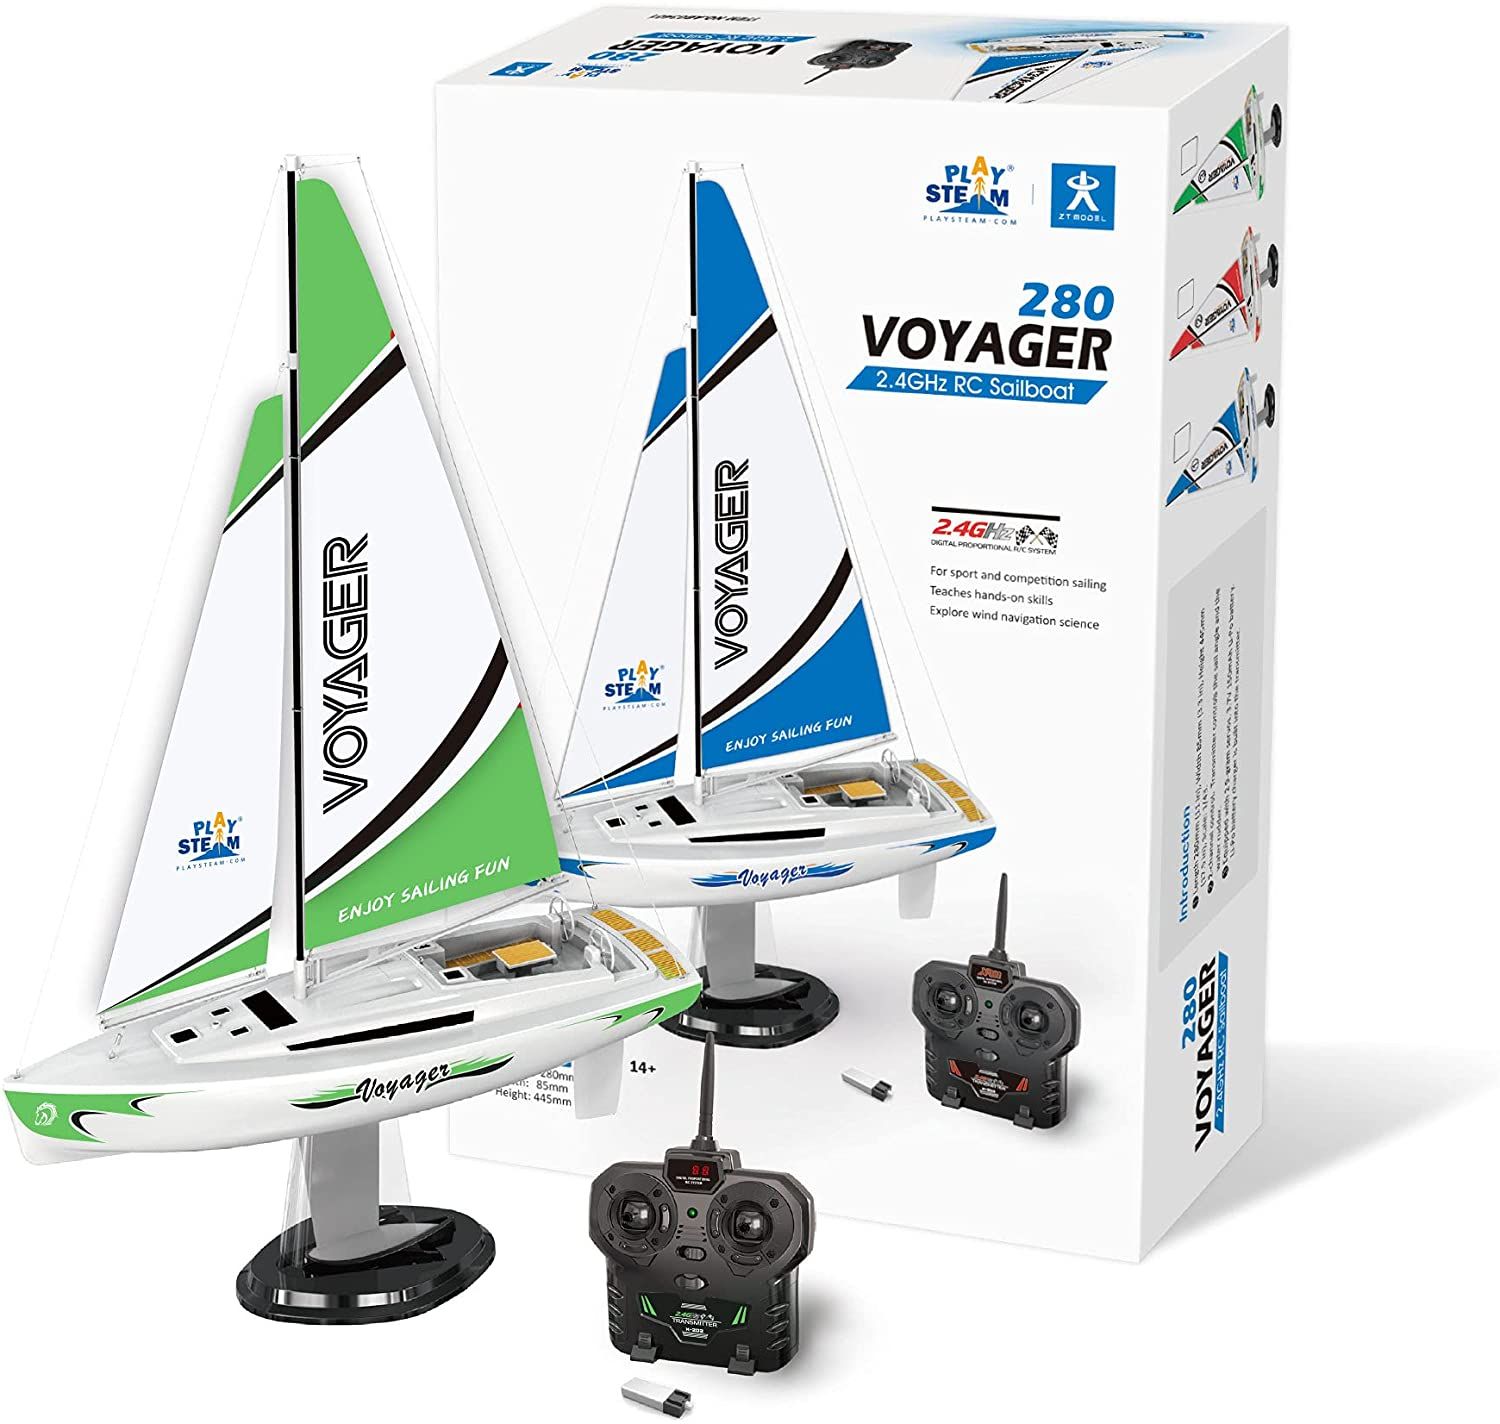 PLAYSTEAM Mini Voyager specialty SALENEW very popular! shop 280 RC Controlled i Powered Sailboat Wind